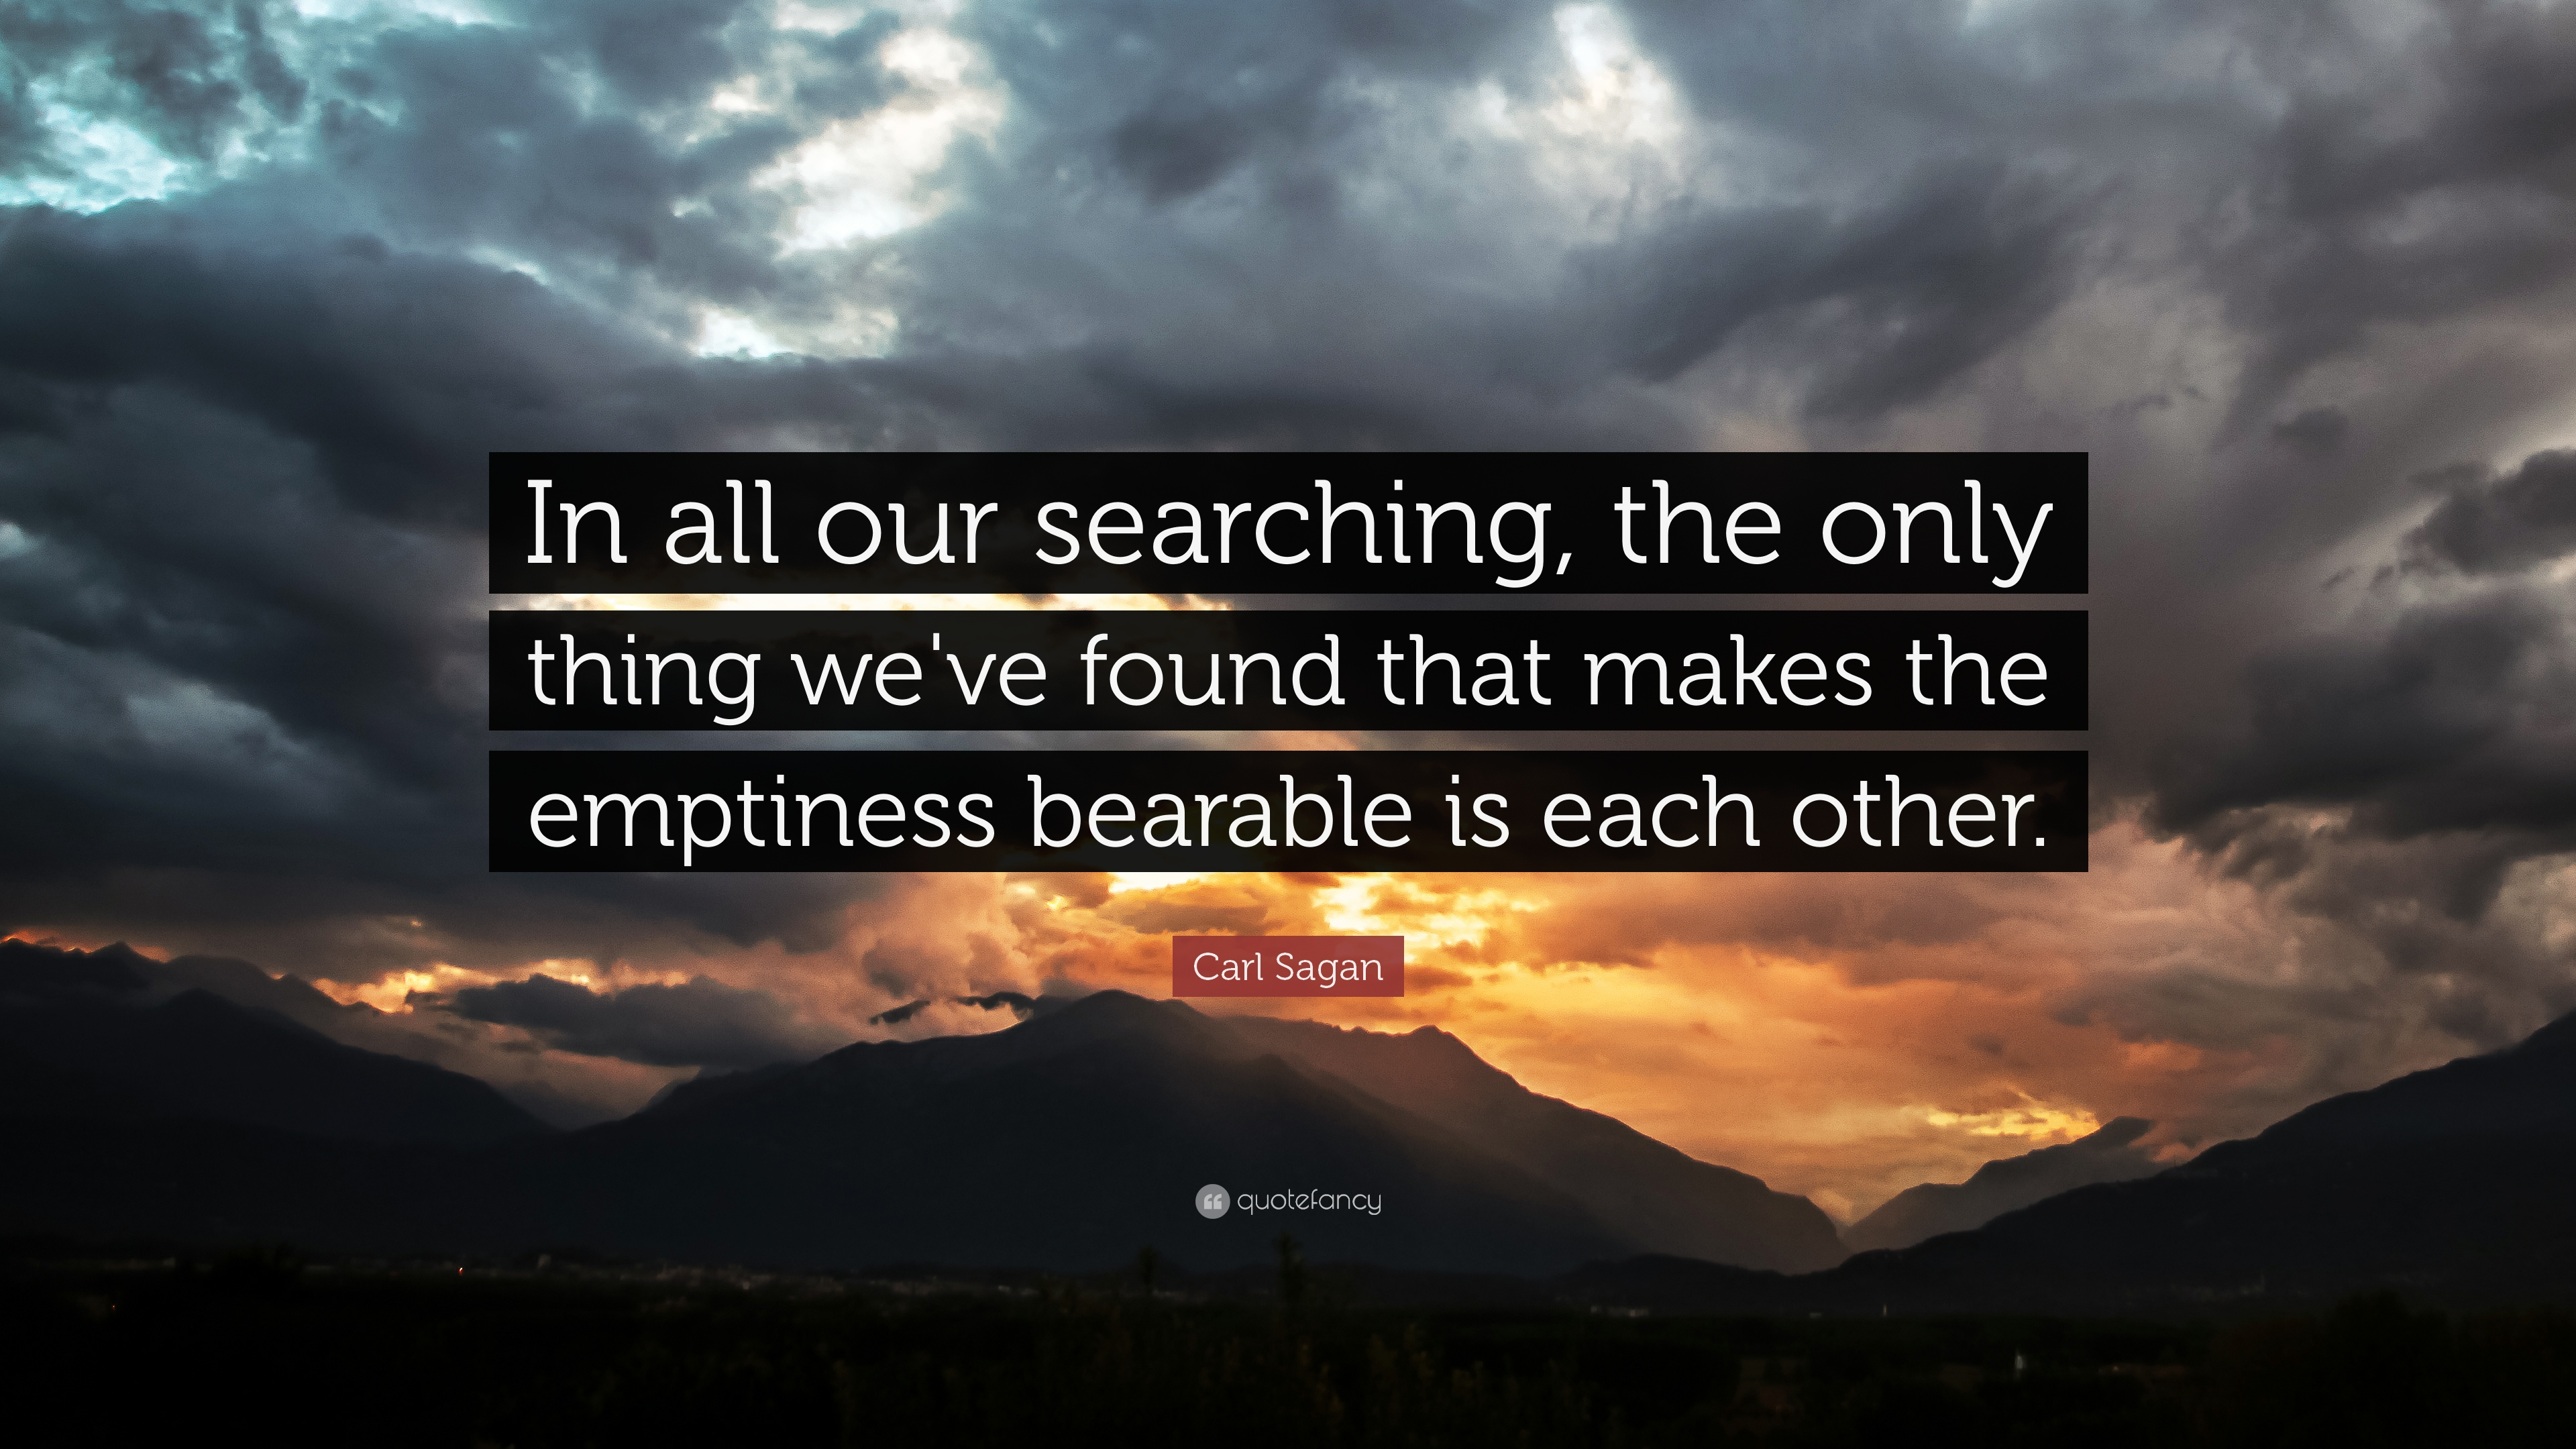 Each Other Is All We Got Quotes: Carl Sagan Quotes (100 Wallpapers)